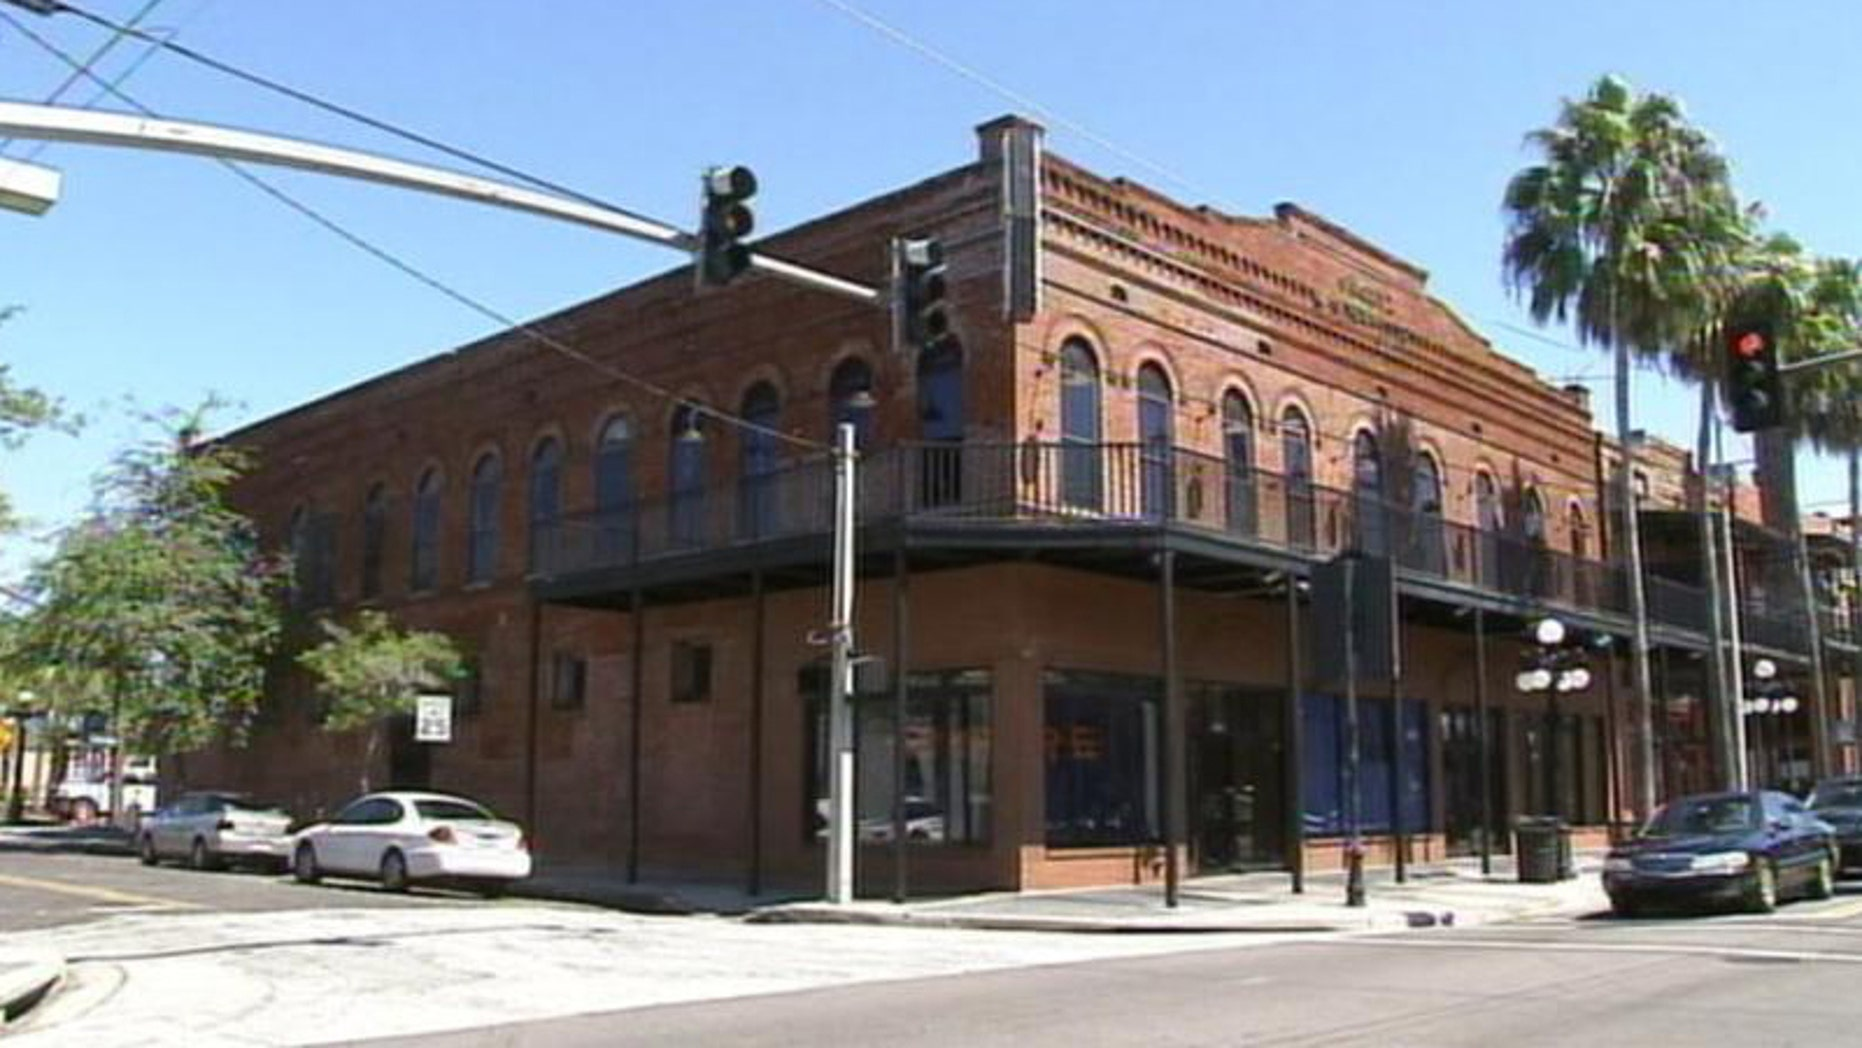 Factoria of Tampa Bay's manager says the Latin flavored establishment is expected to open next month.